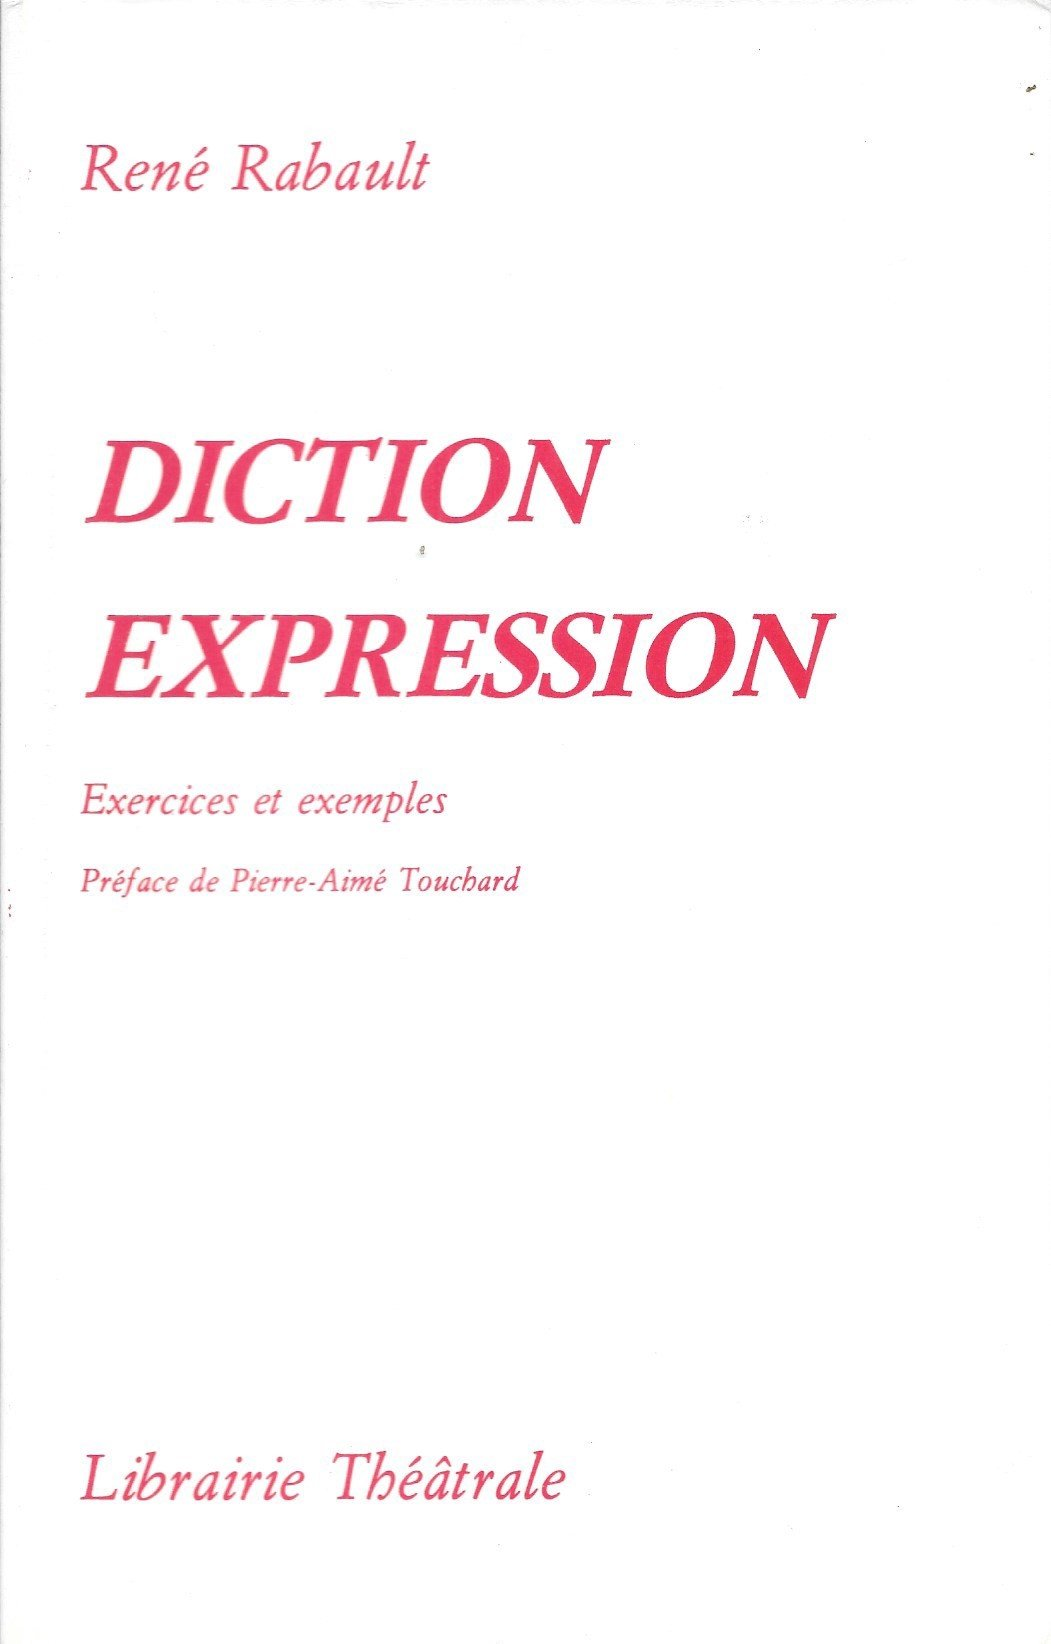 Diction, expression, exercices et exemples